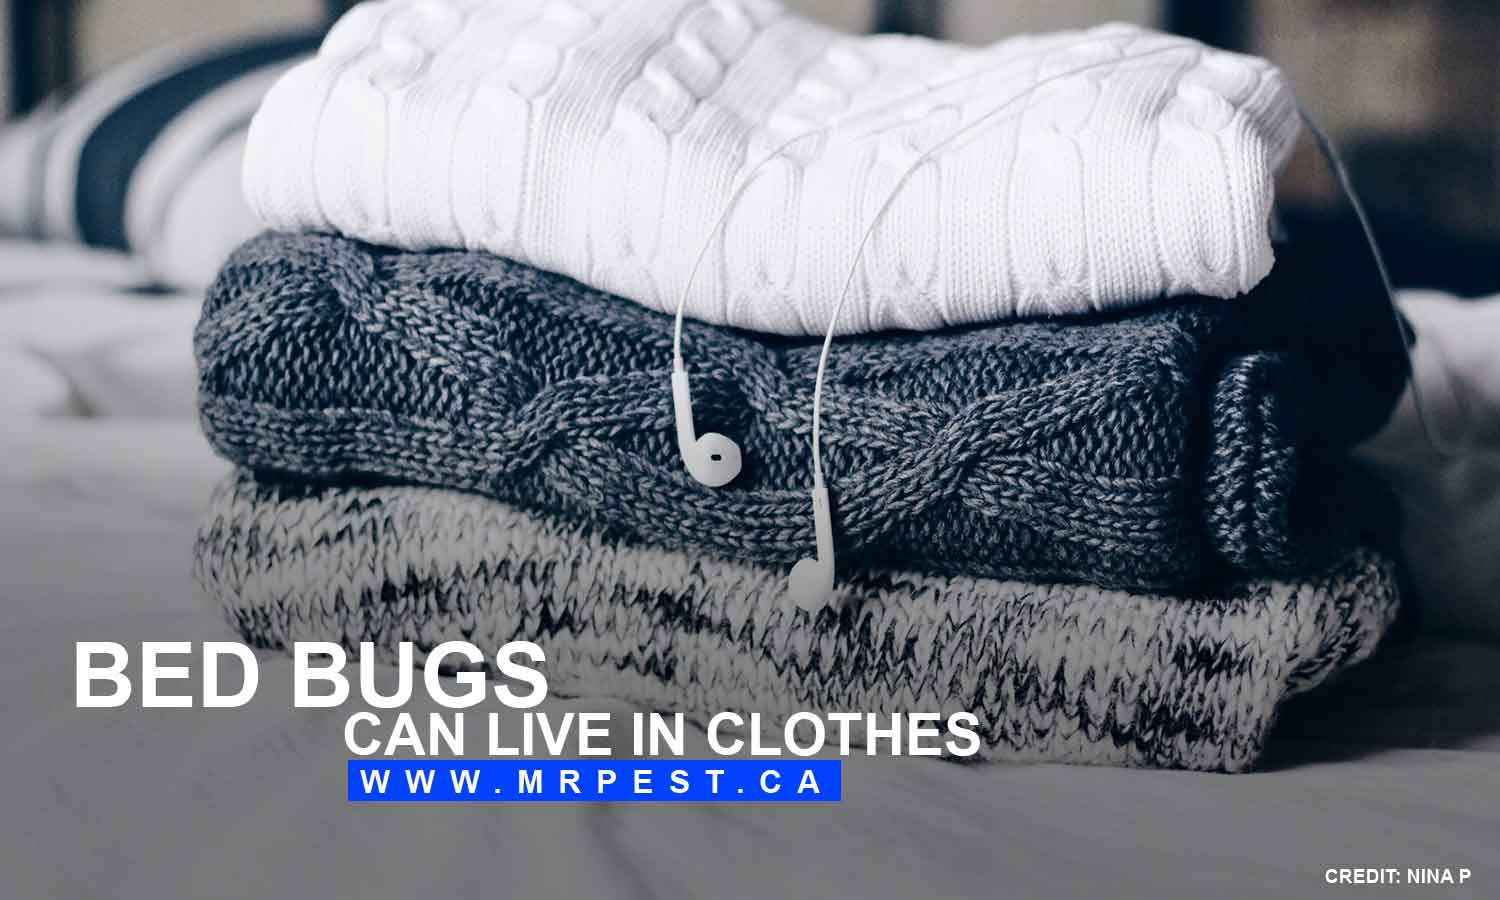 Bed bugs can live in clothes